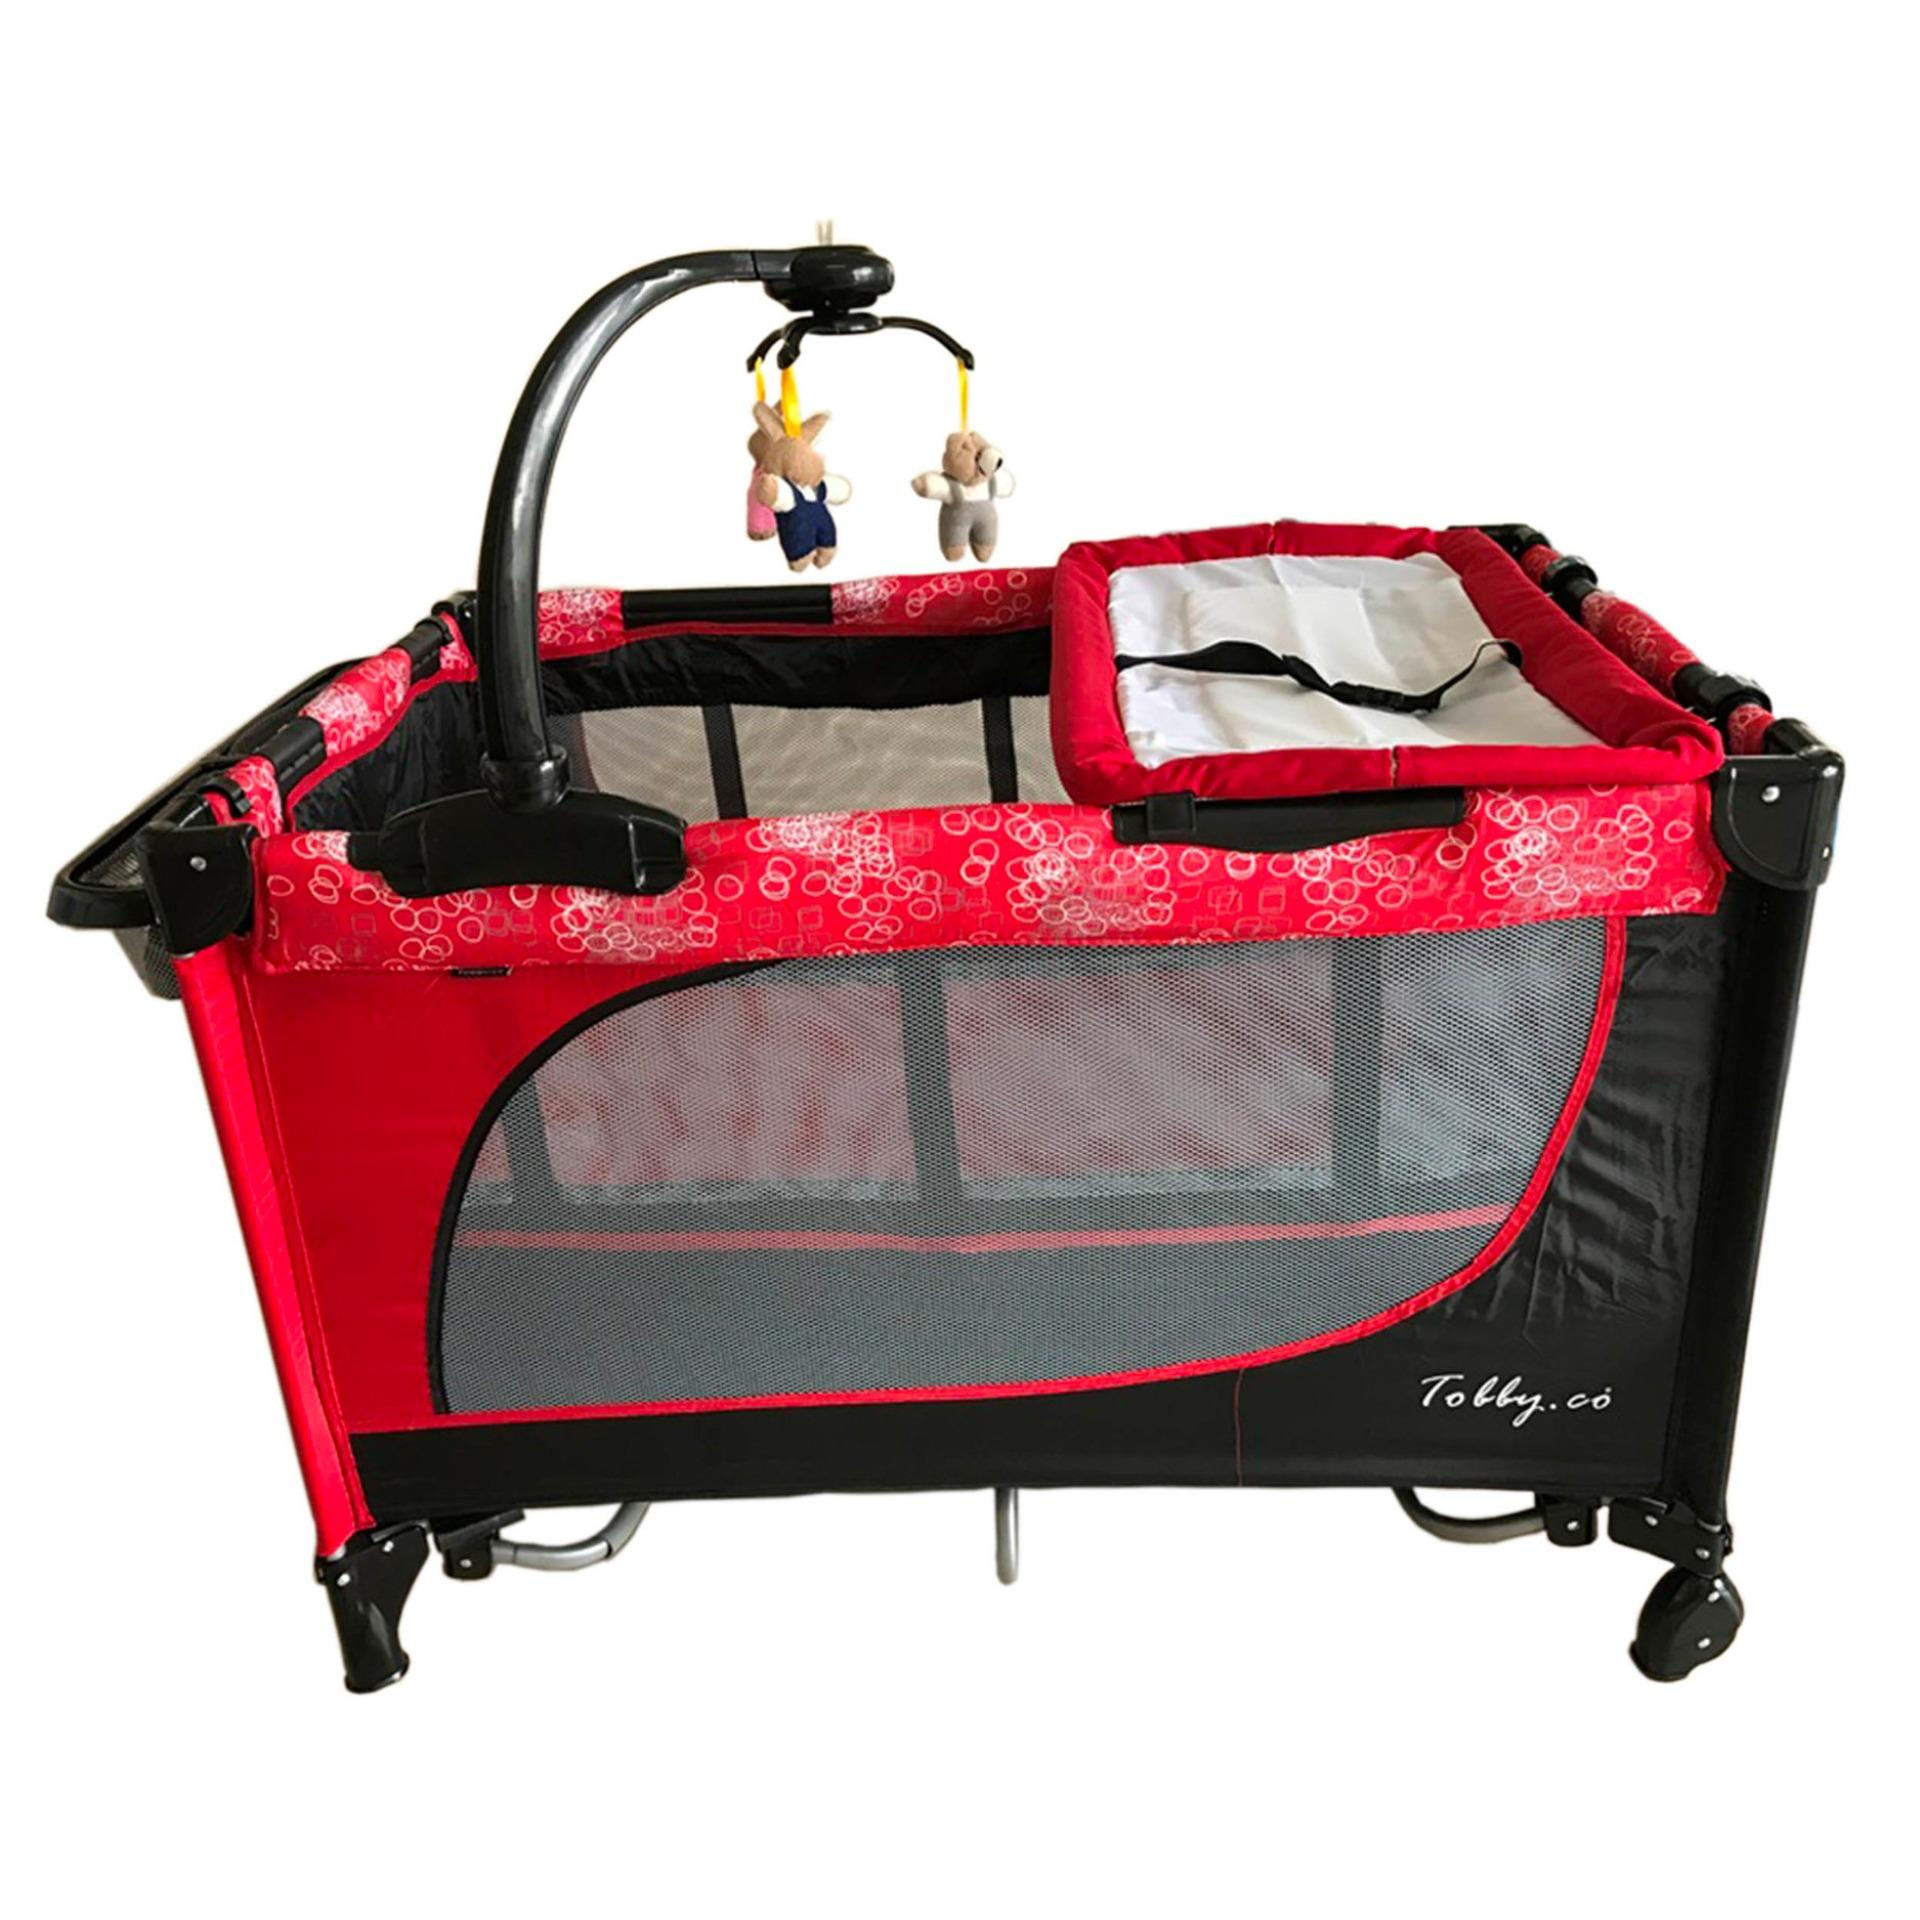 Crib for sale in pampanga - Baby 1st Playpen Crib Tobby Co With Accessories Red Black Lazada Ph